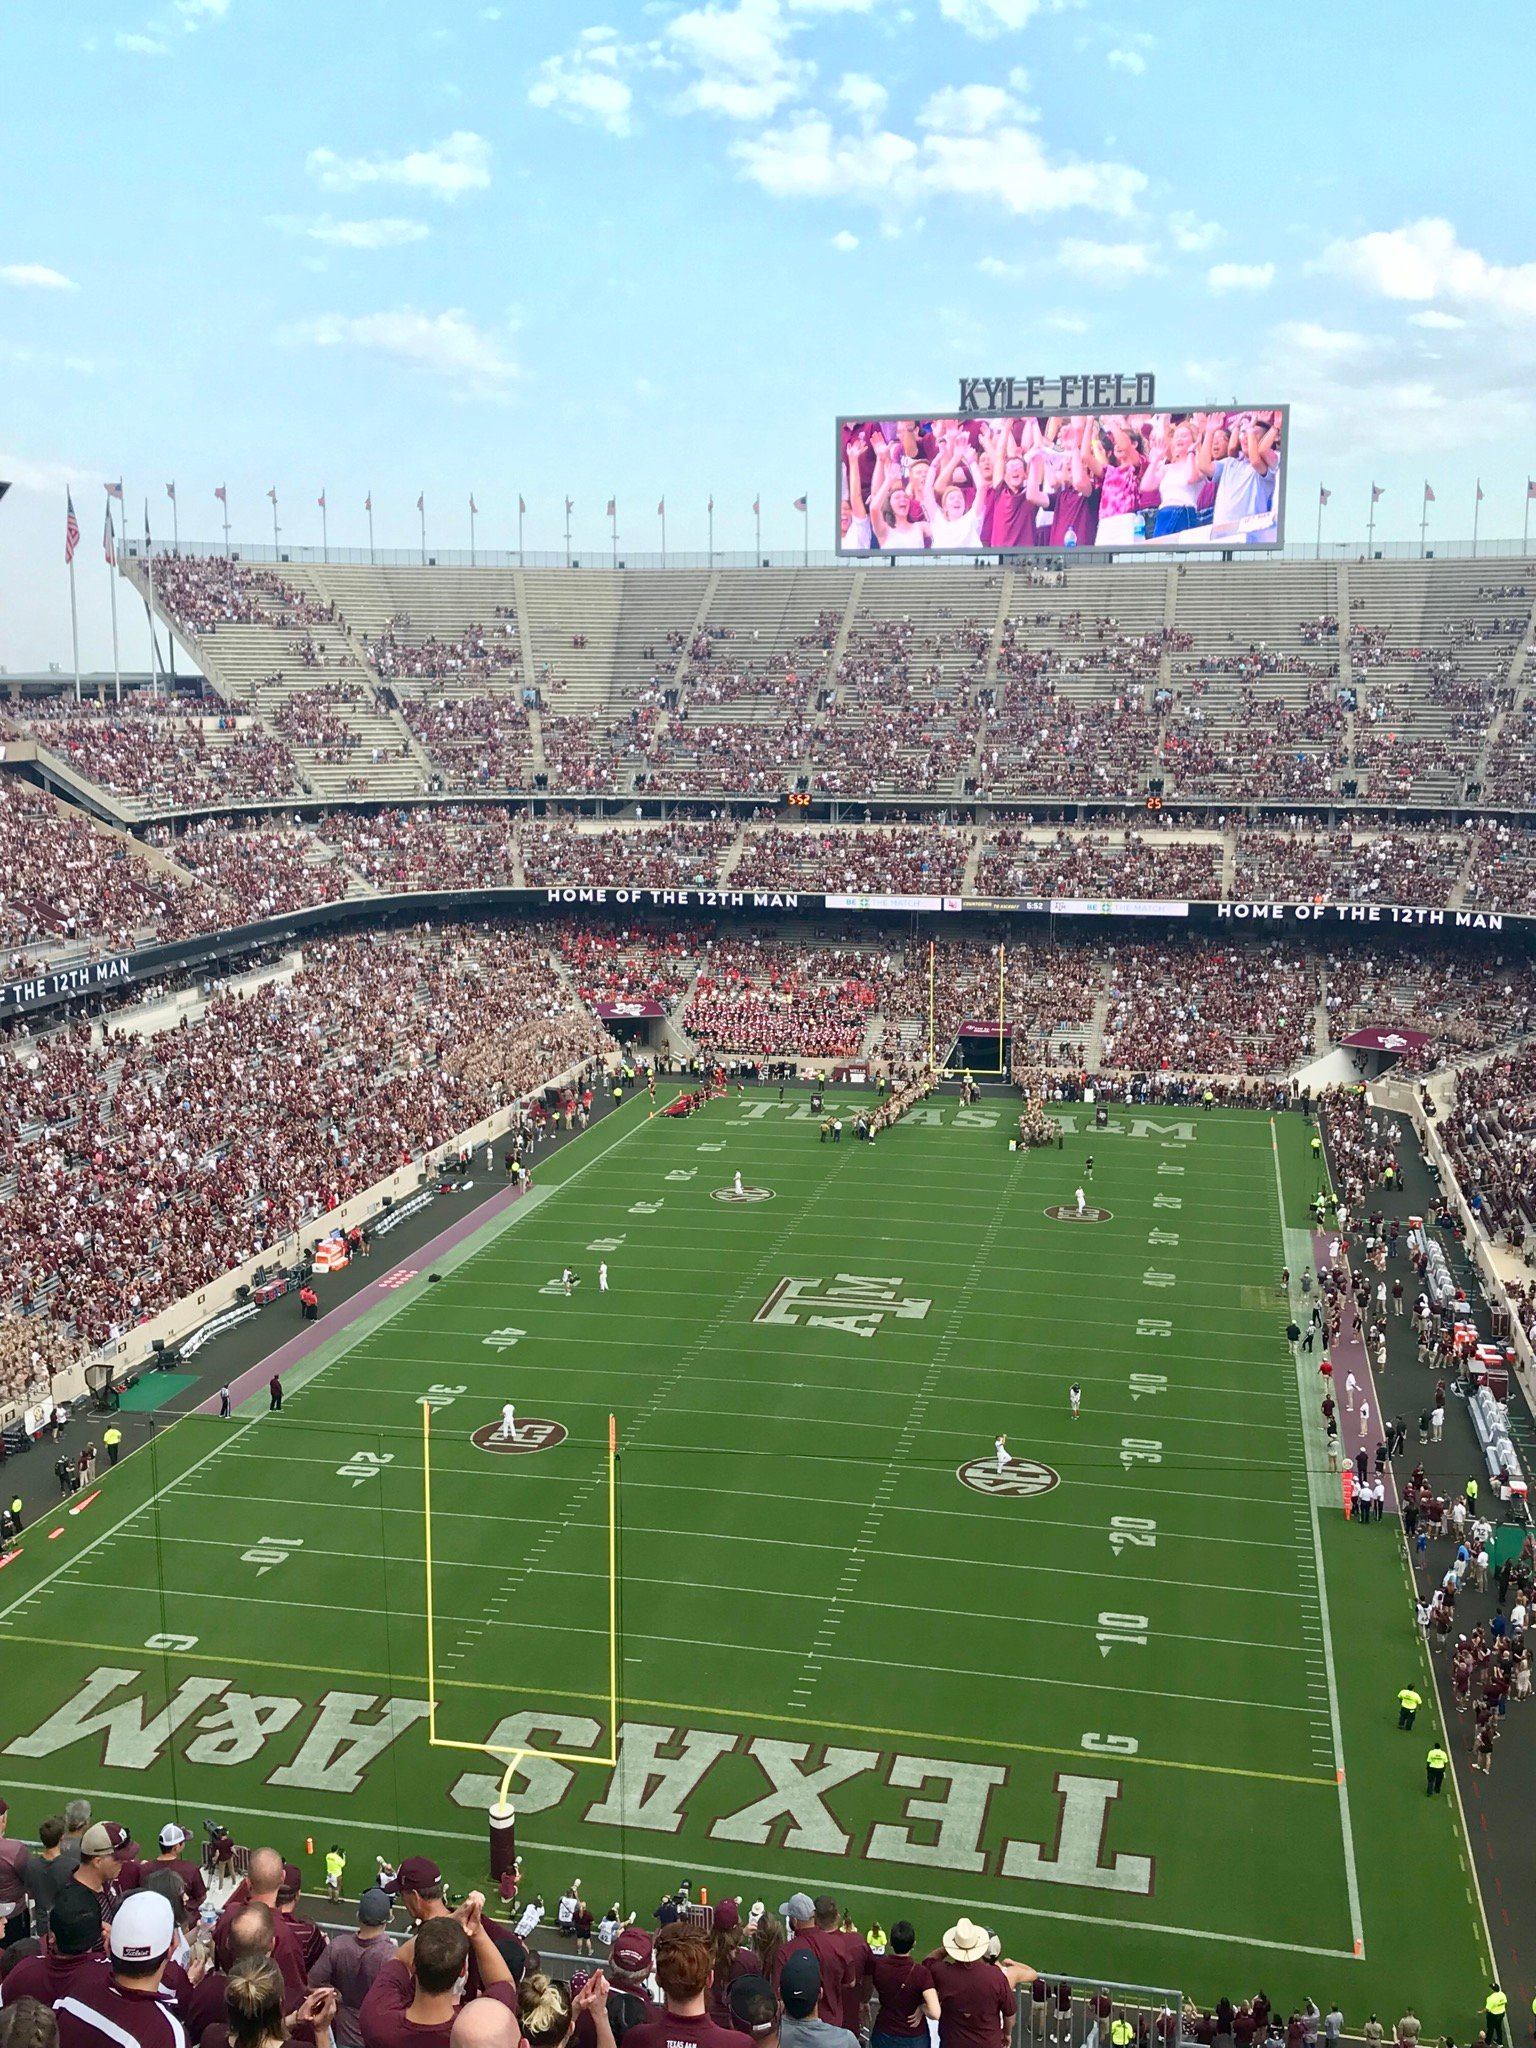 Seat View for Kyle Field Section 413, Row 2